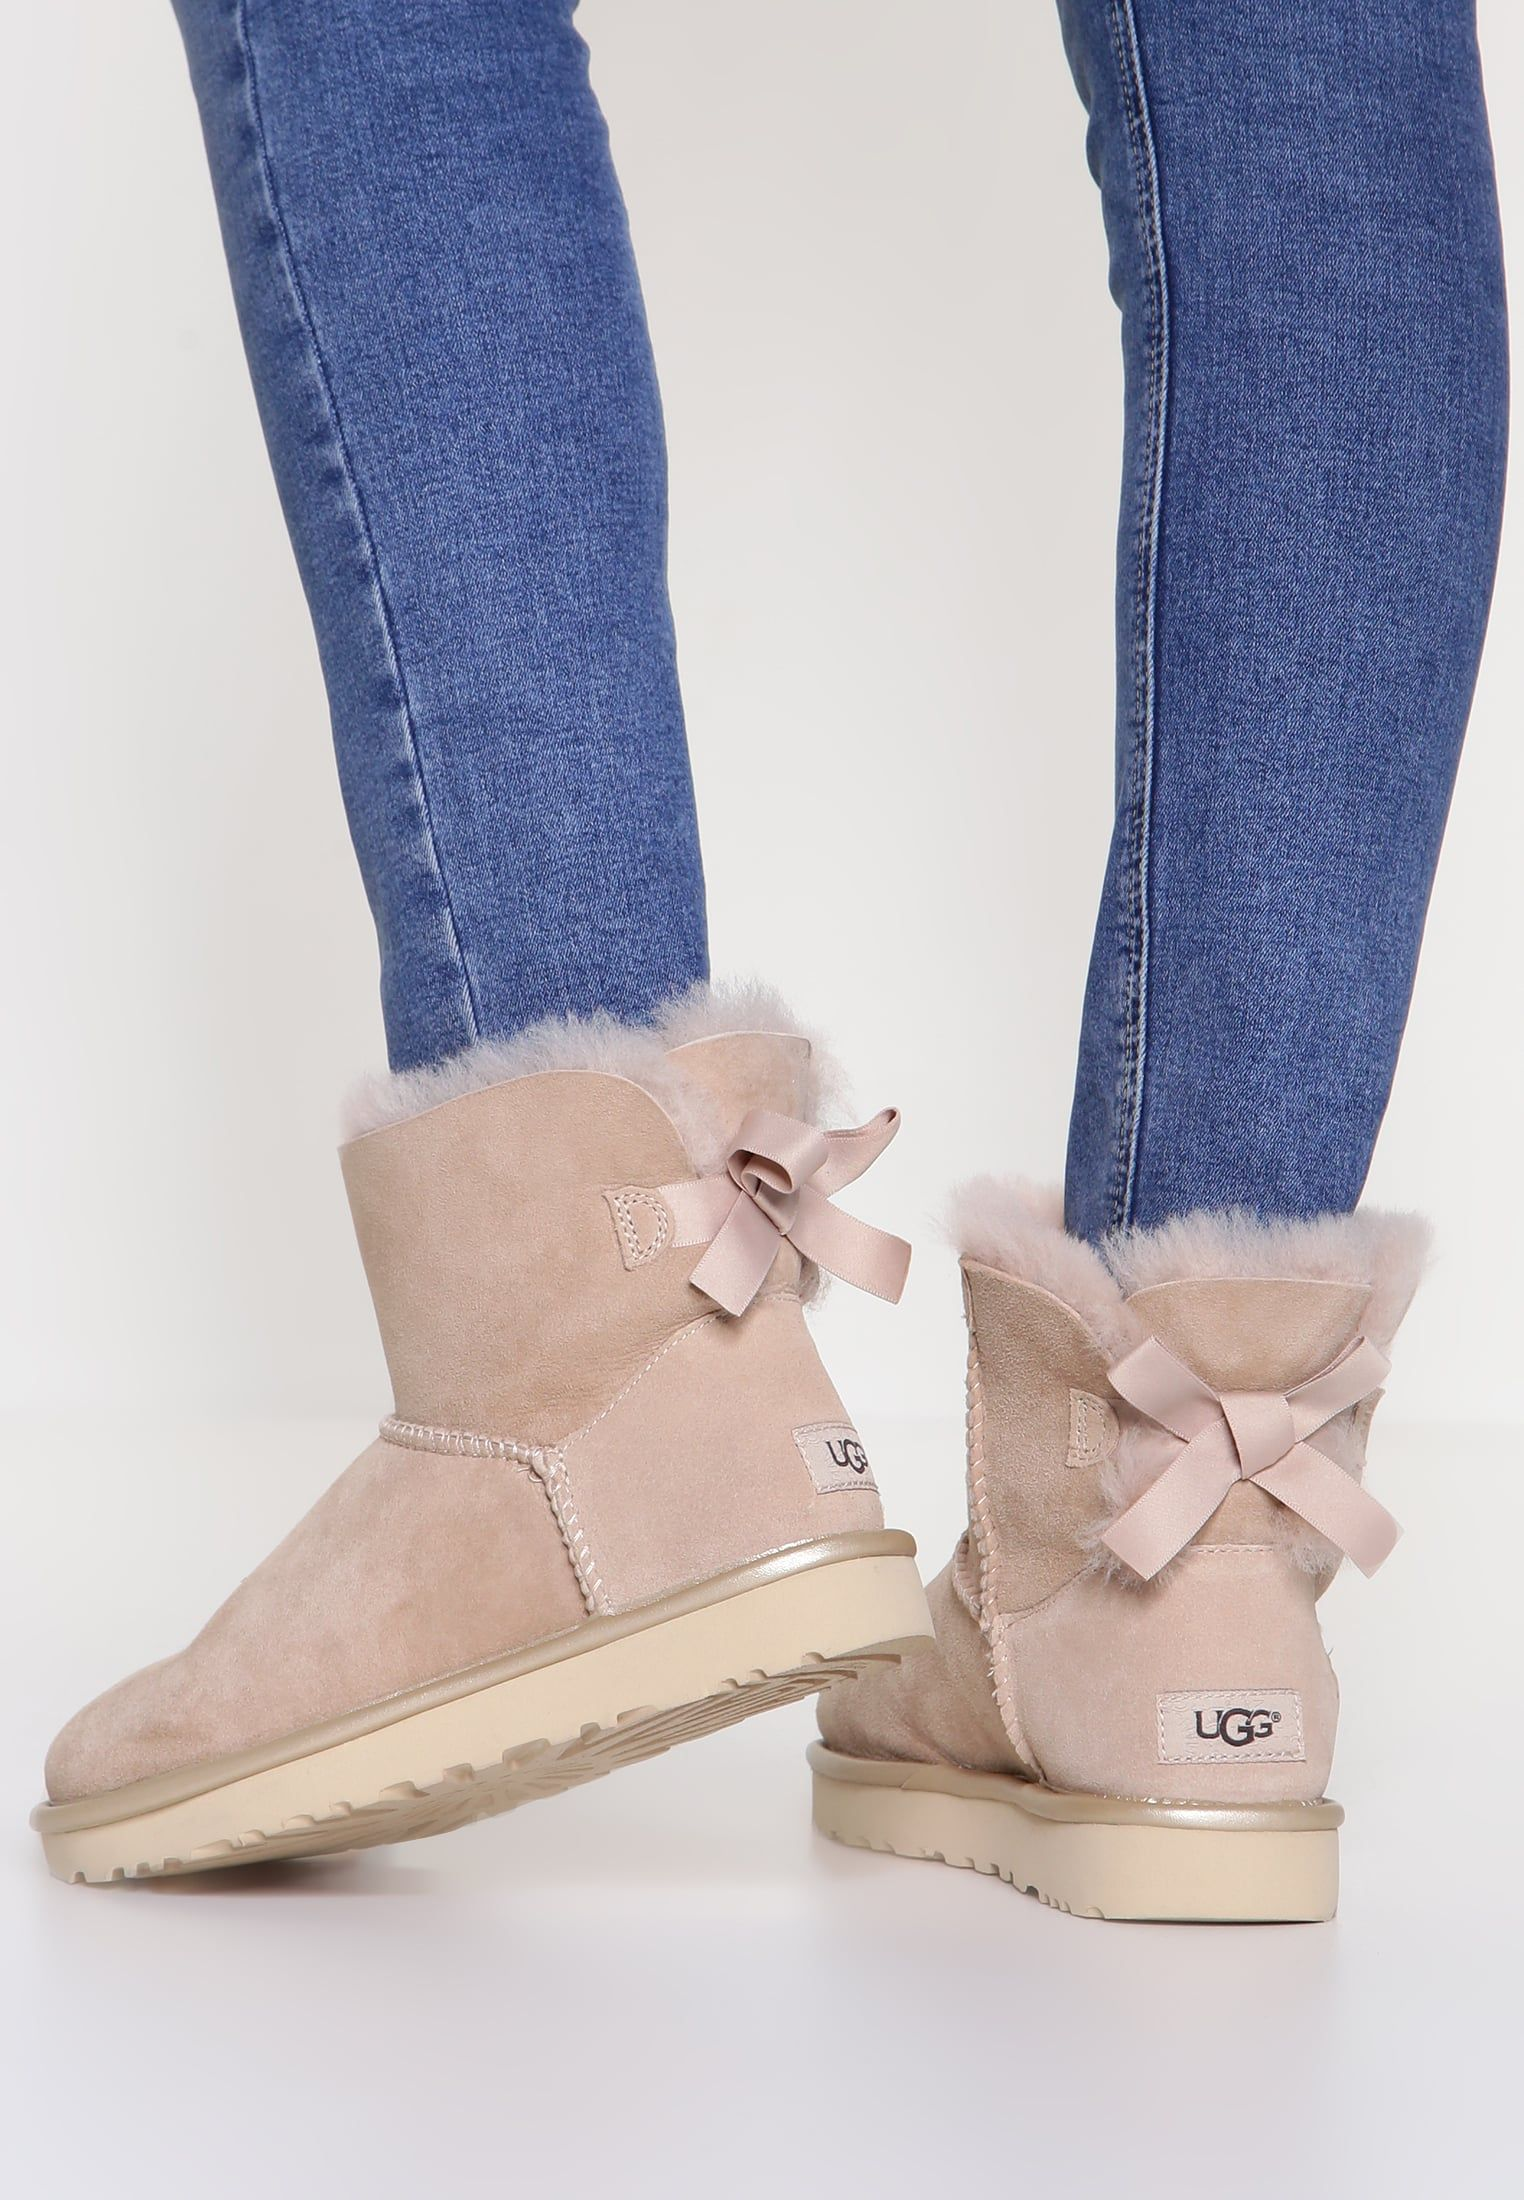 UGG MINI BAILEY BOW II METALLIC Stiefelette driftwood